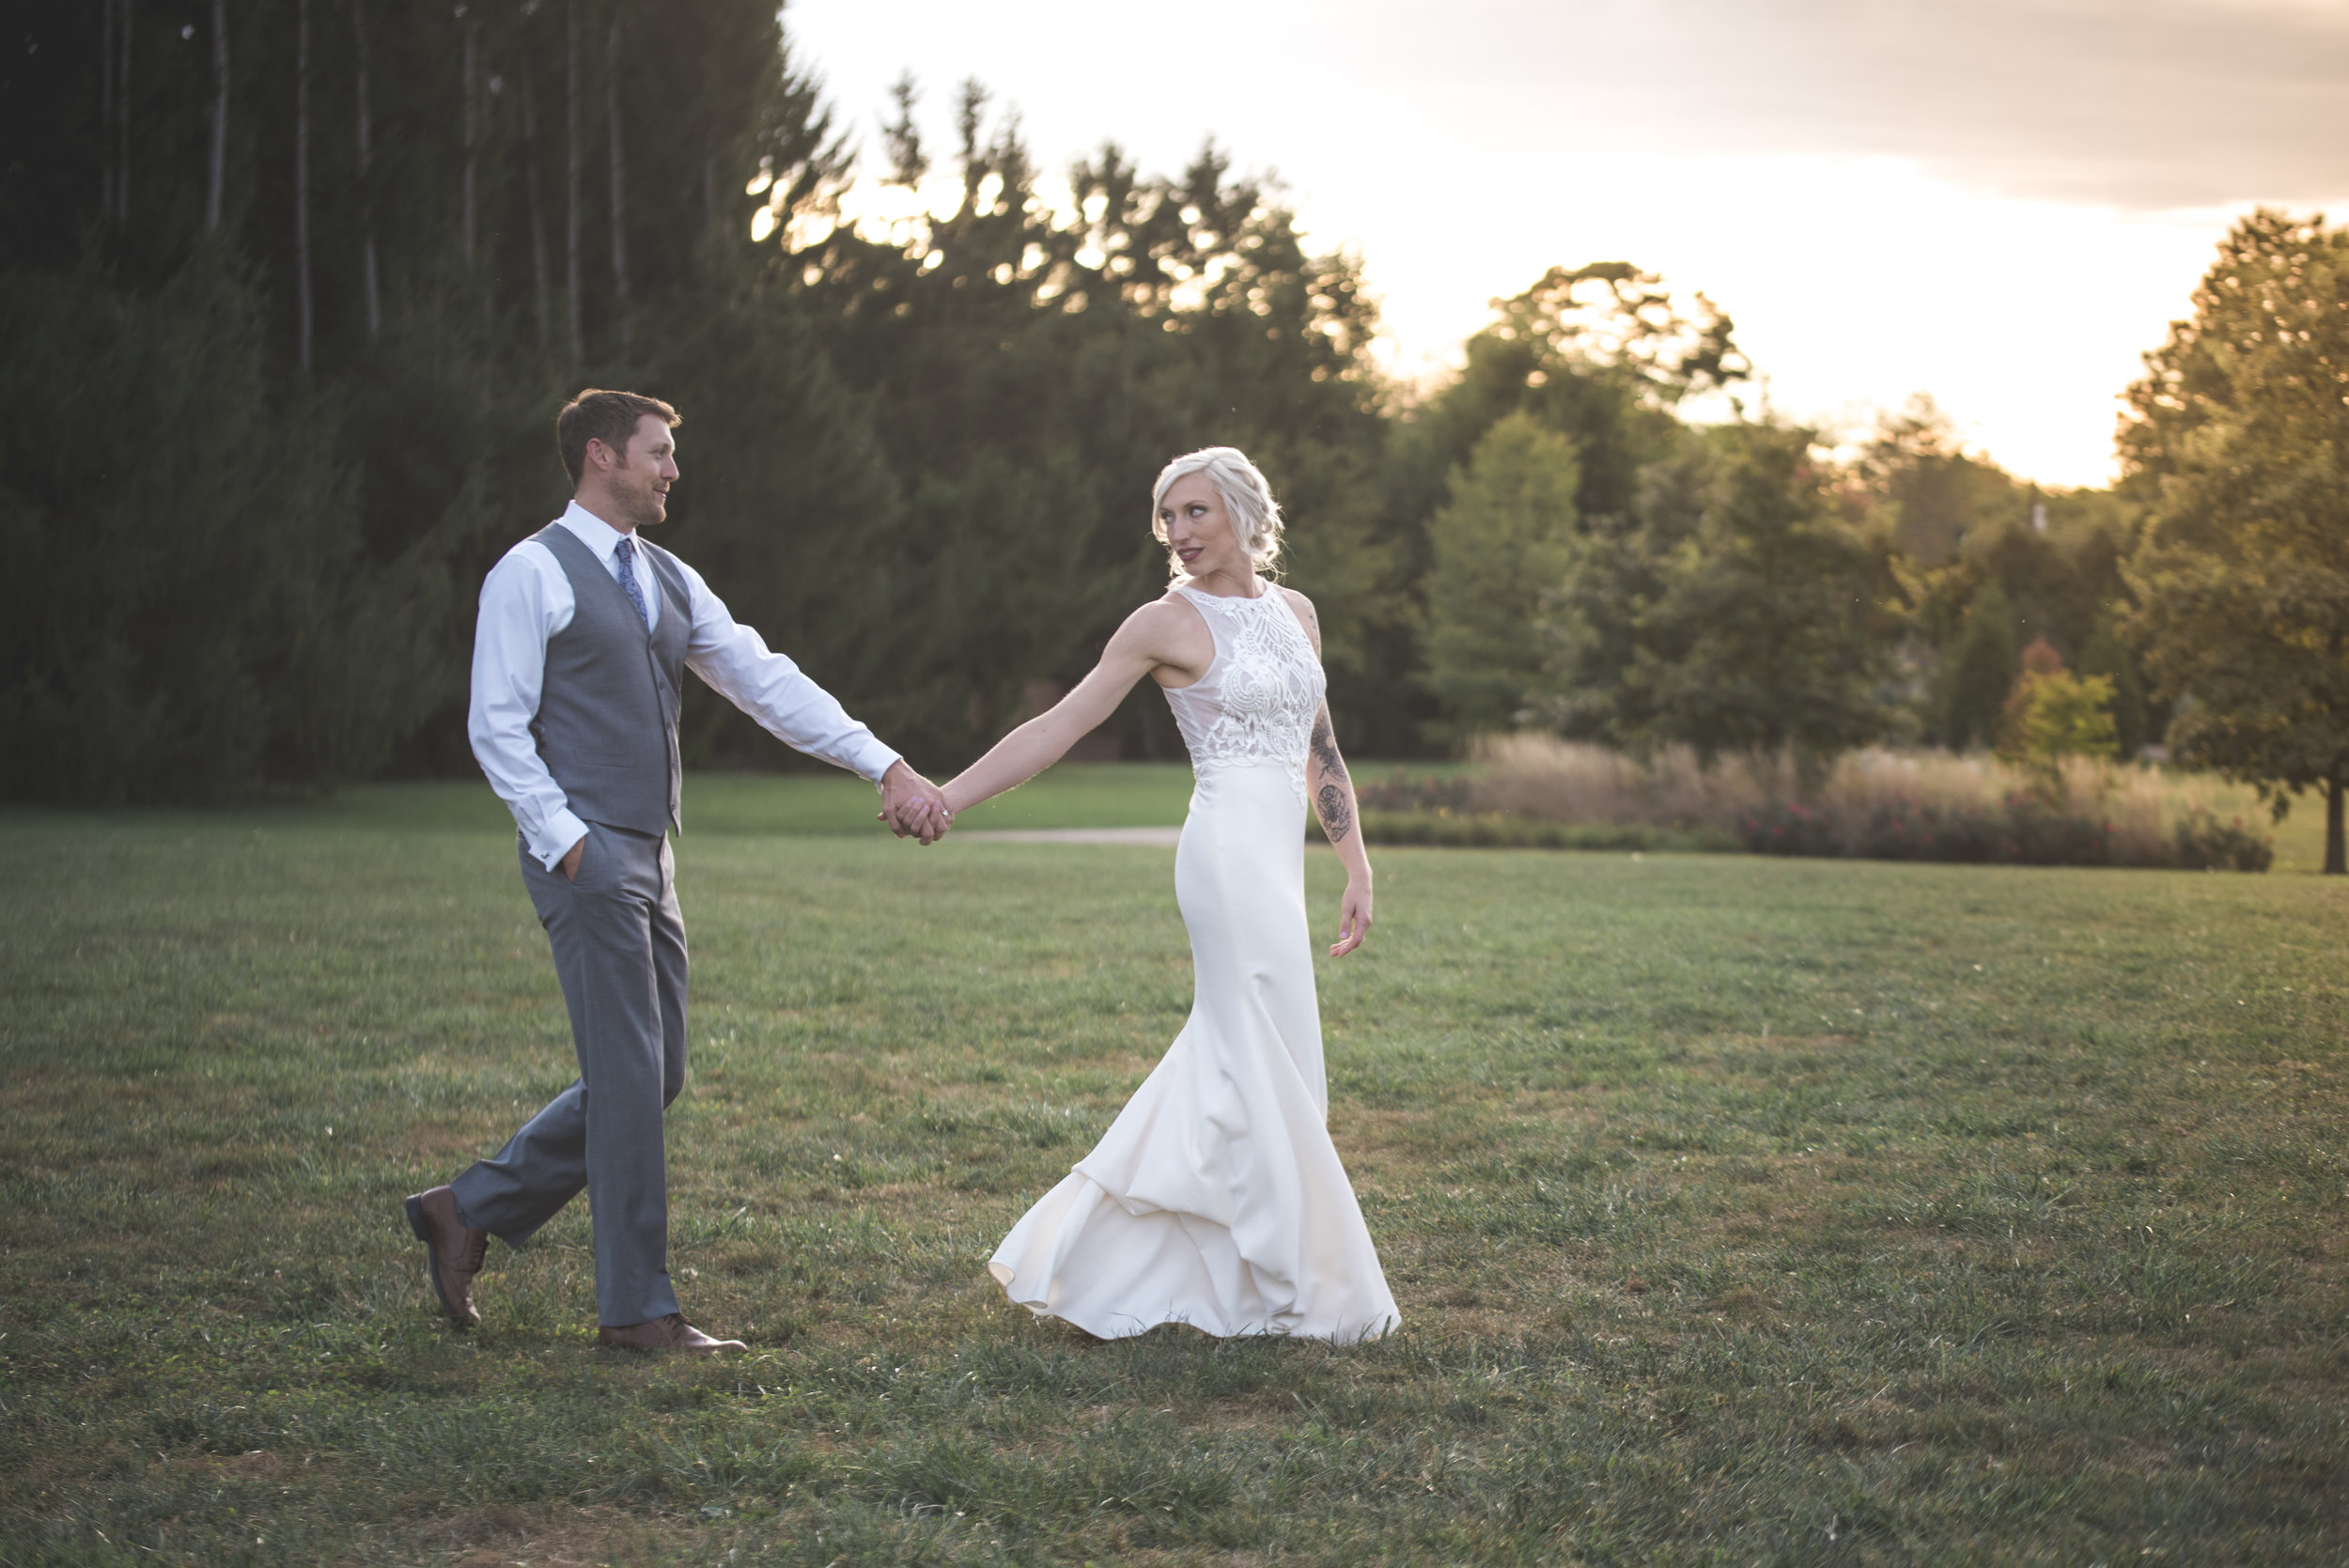 Bride and groom walk in a natural portrait